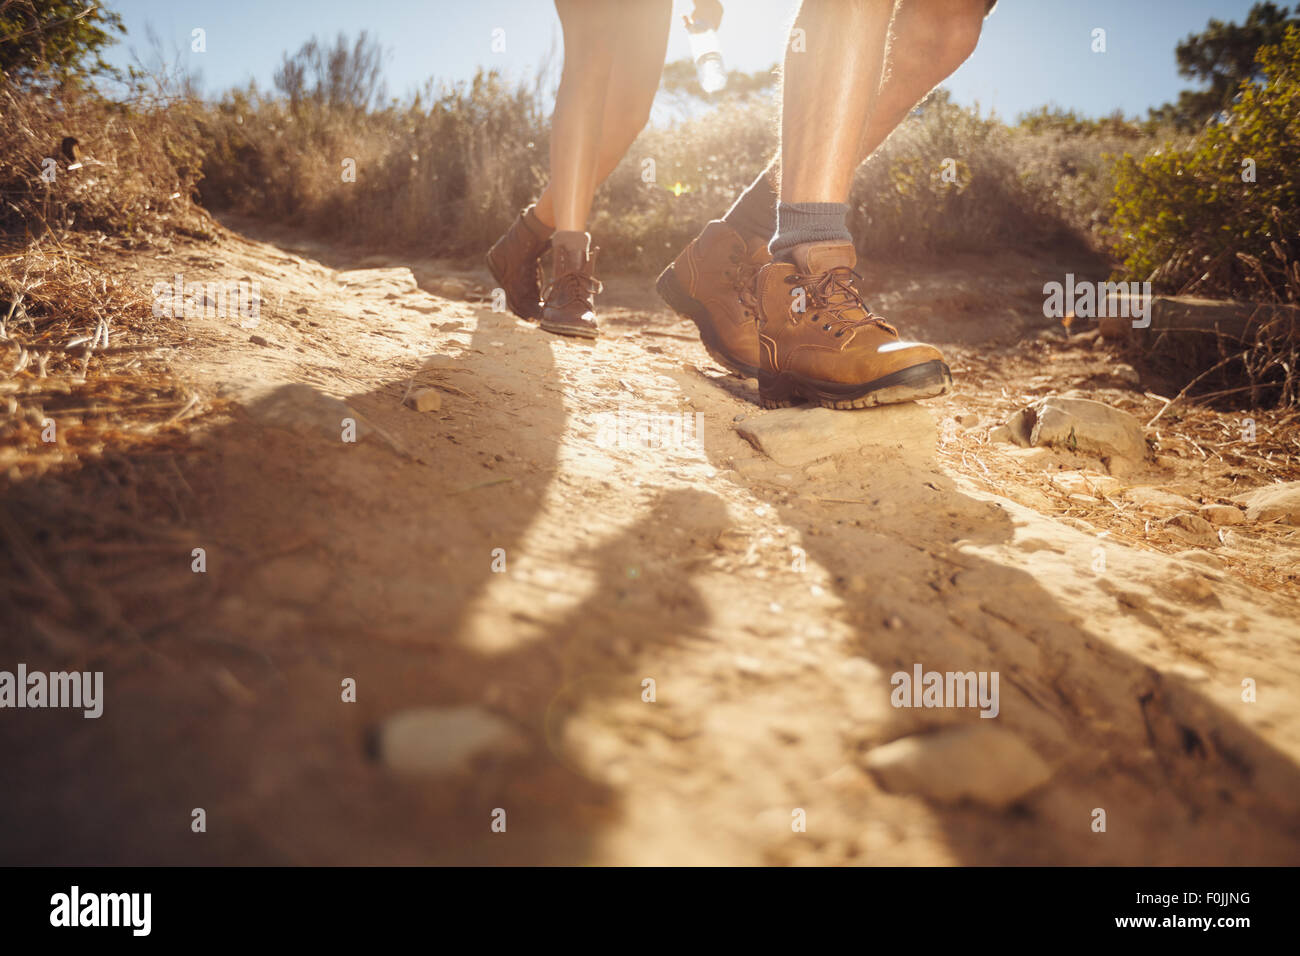 Hiking shoes in action on a country trail path. Close-up of male hikers shoes on dirt trail. Young people hiking - Stock Image